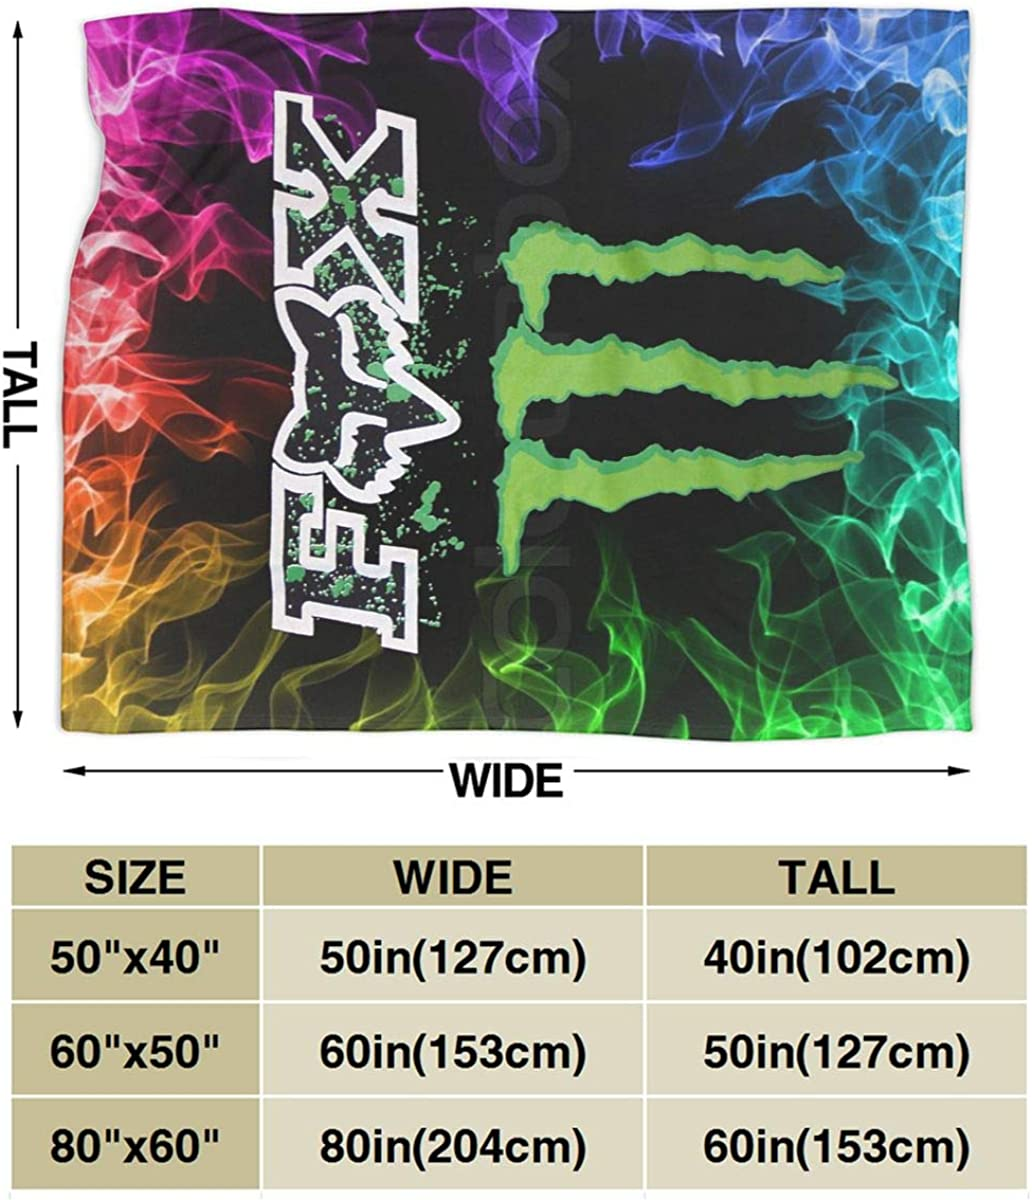 BT Fox and Mon-Ster Energy Logo Fleece Soft Throw Blankets Warm Plush Cozy Blankets for Bedroom//Couch Black